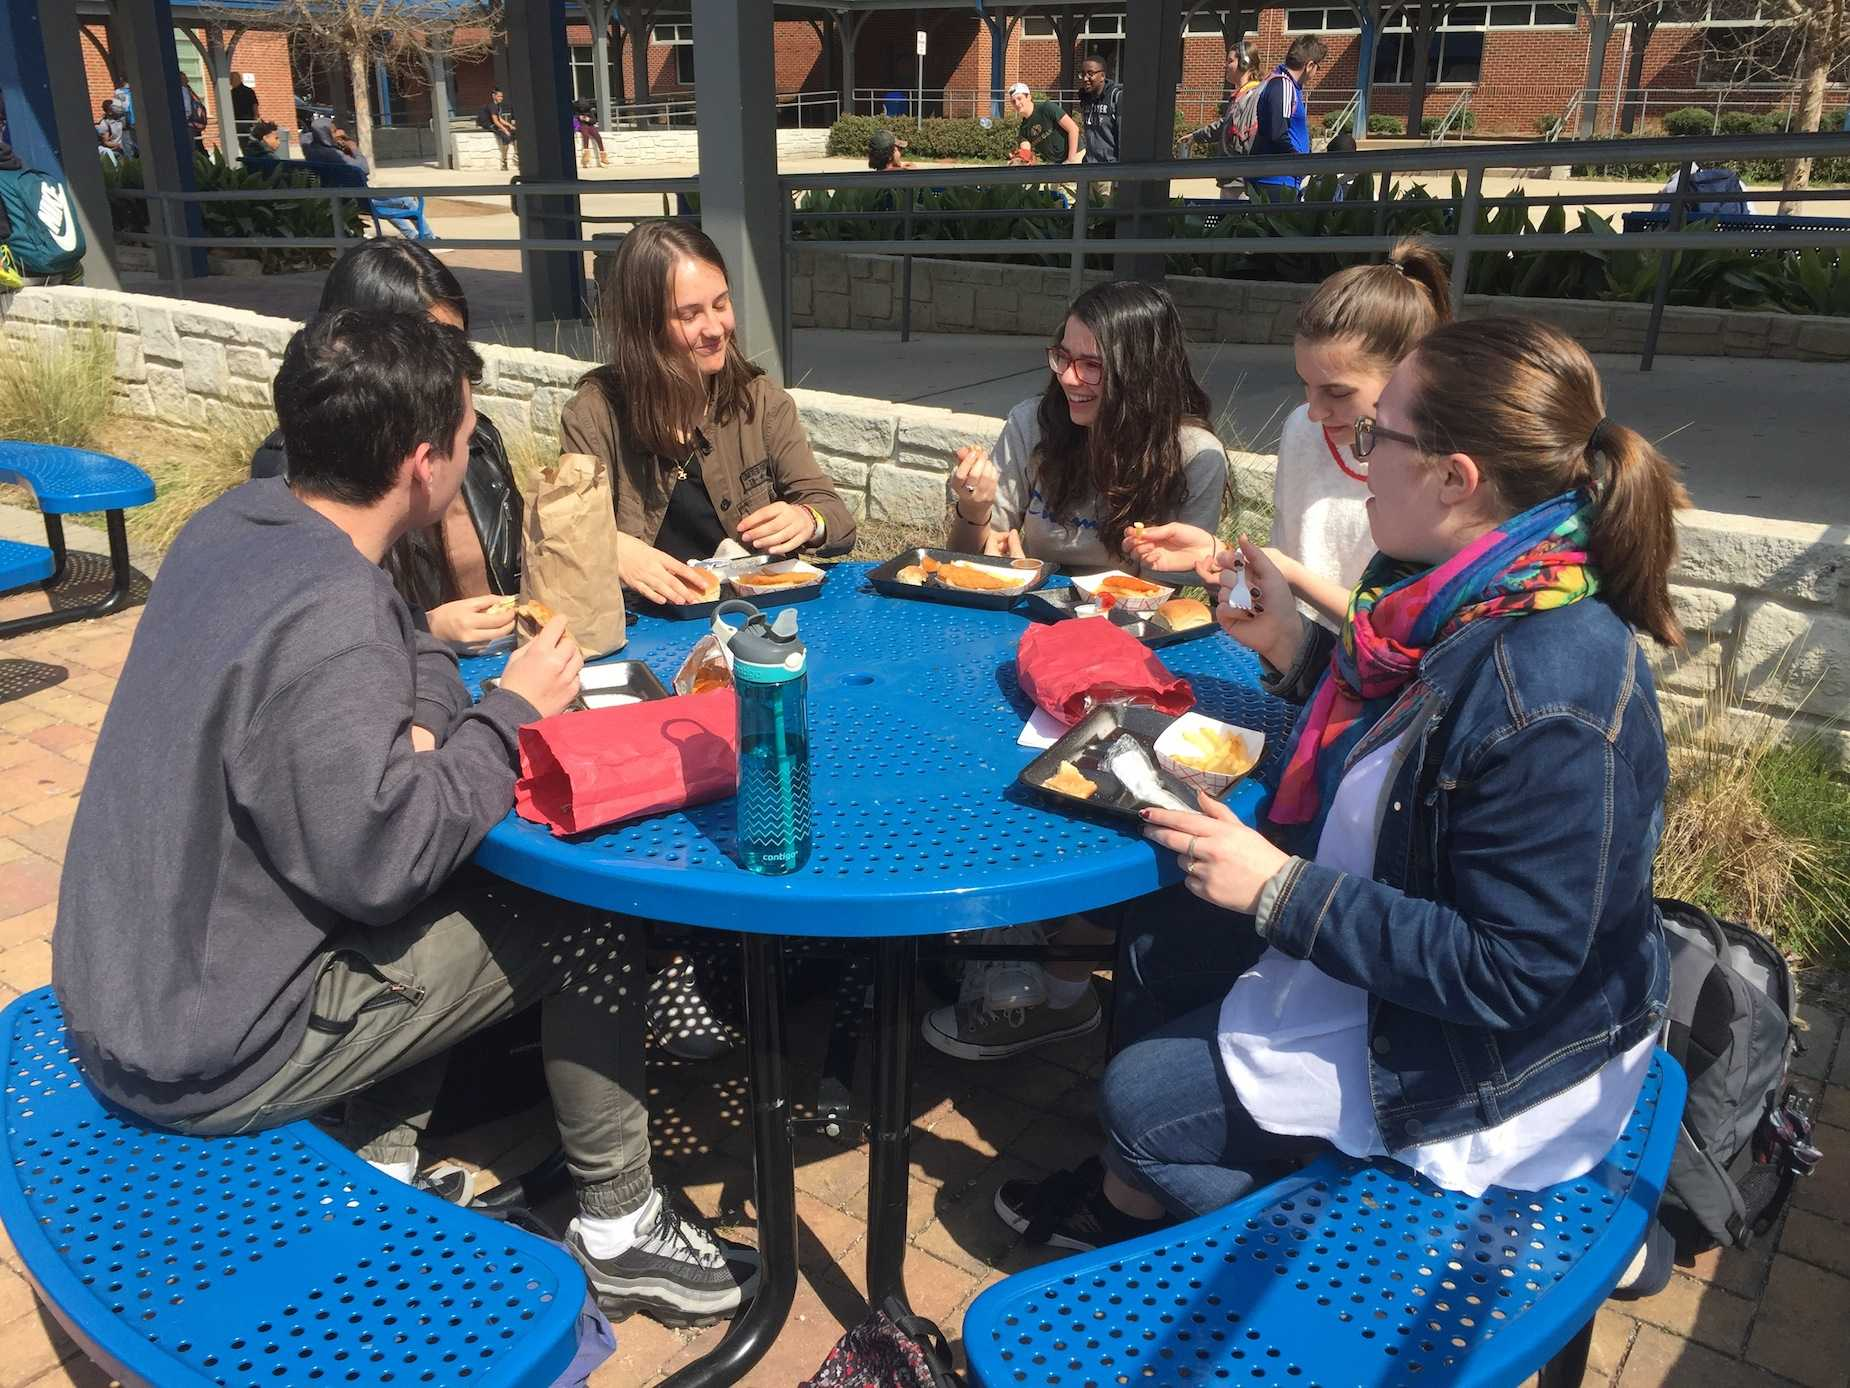 """French exchange students reminisce over their past six days in America during lunch, and converse in their native language. """"We visited the CNN center, everything is expensive in America, so we are ready to go back,"""" said foreign exchange student Marion Morin."""